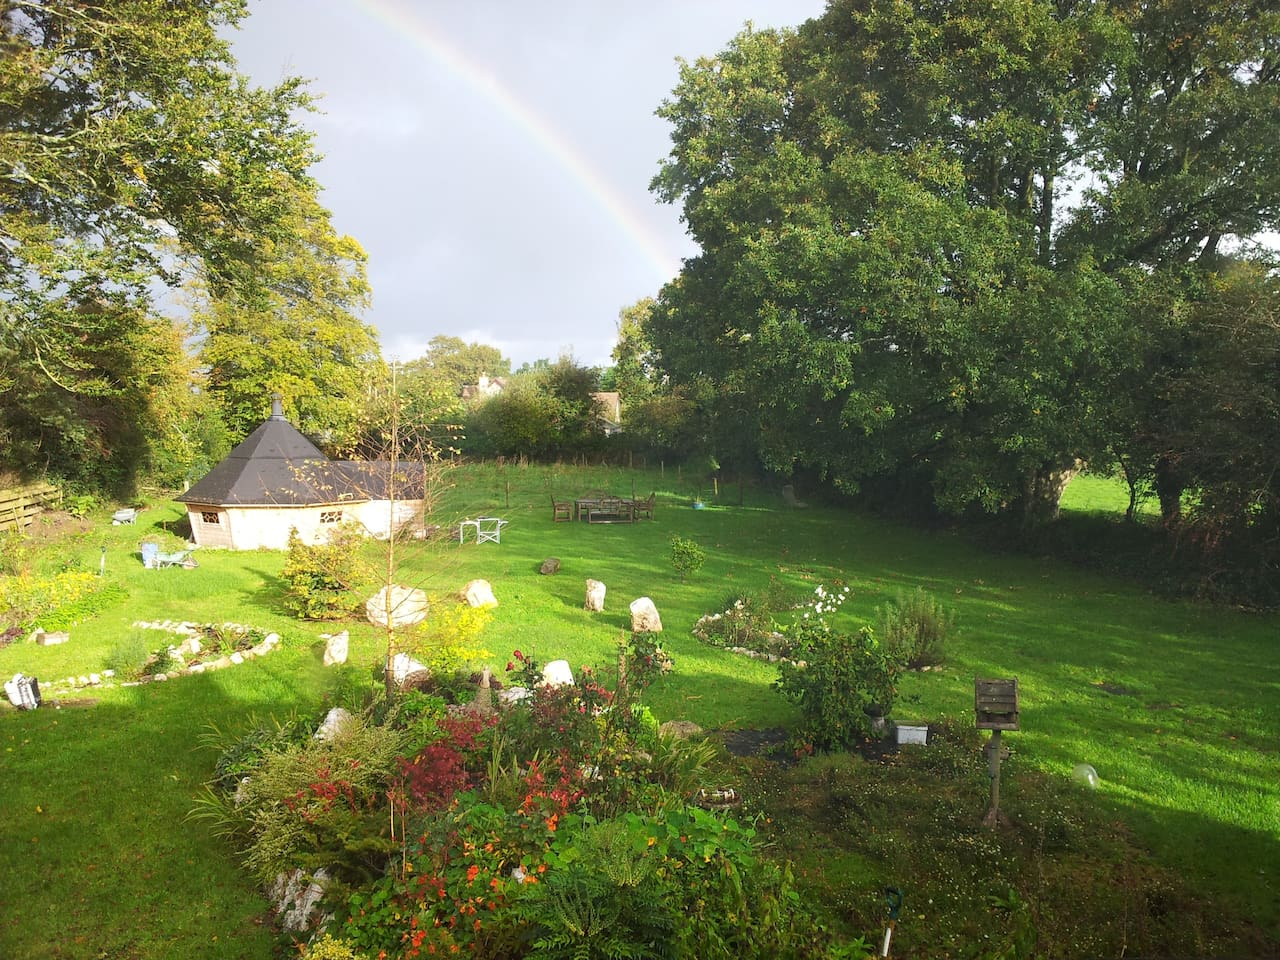 The Pixie House situated in an unusual evolving garden with a stone circle and moon garden.